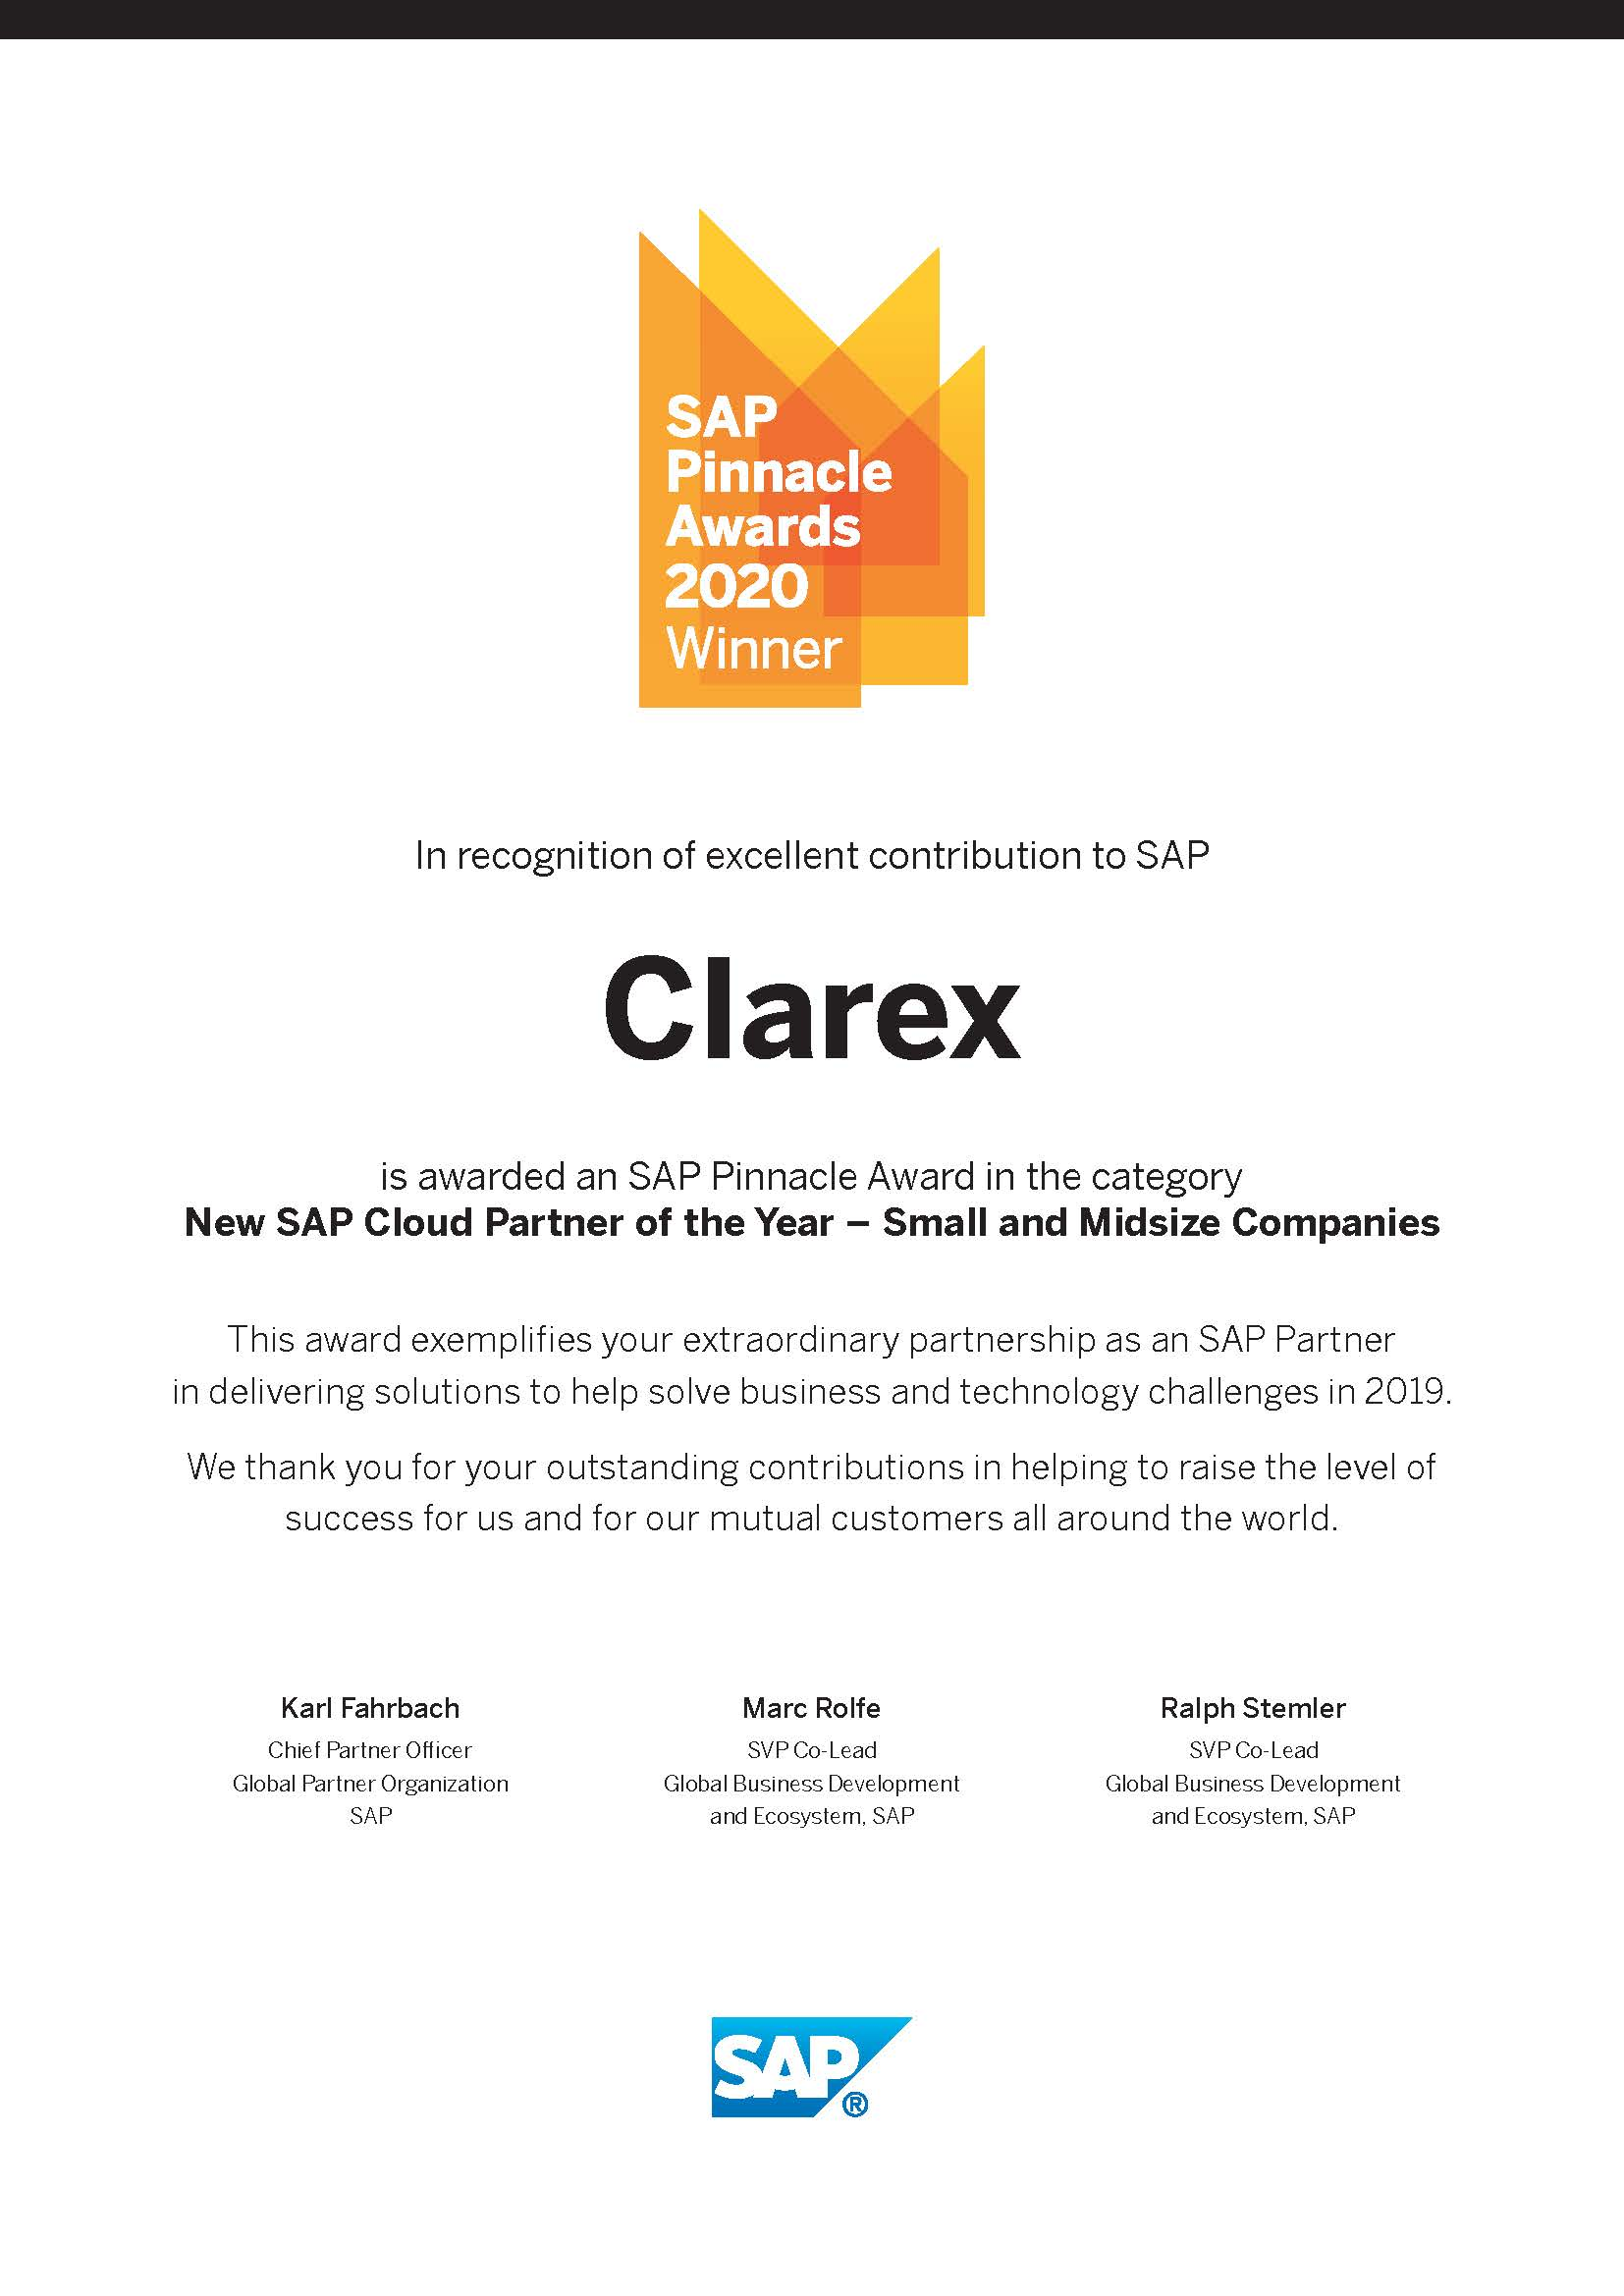 SAP_Pinnacle_Certificate_2020_Clarex